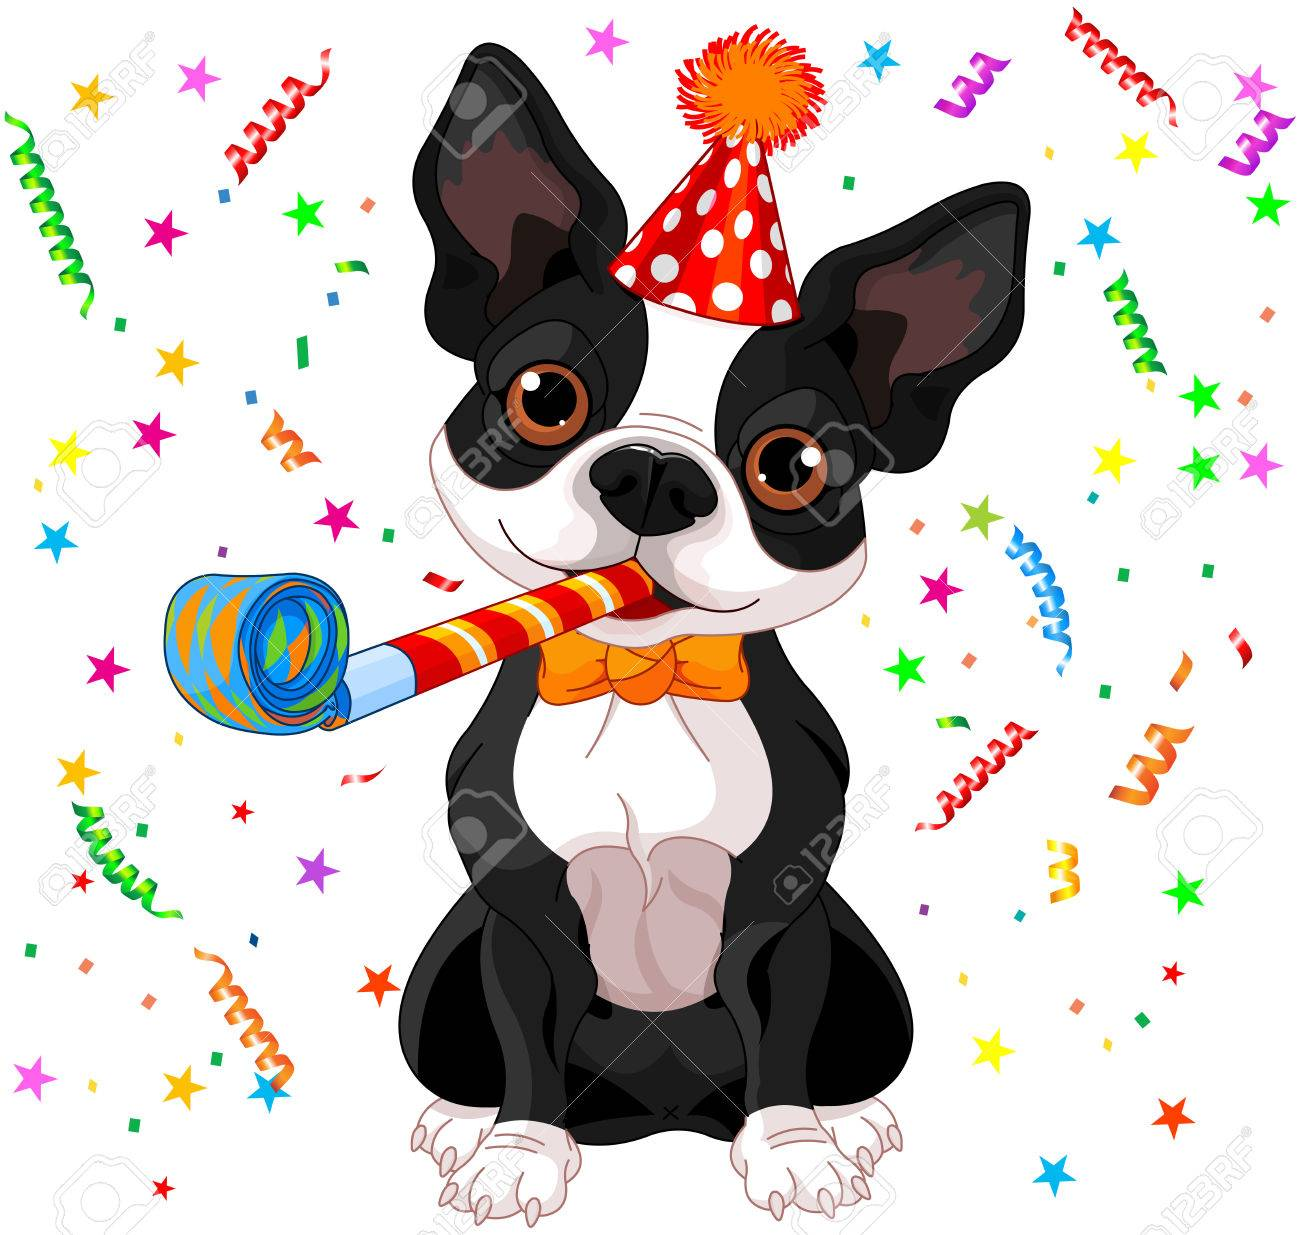 Faire apprécier les contacts? 35588778-illustration-of-cute-boston-terrier-celebrating